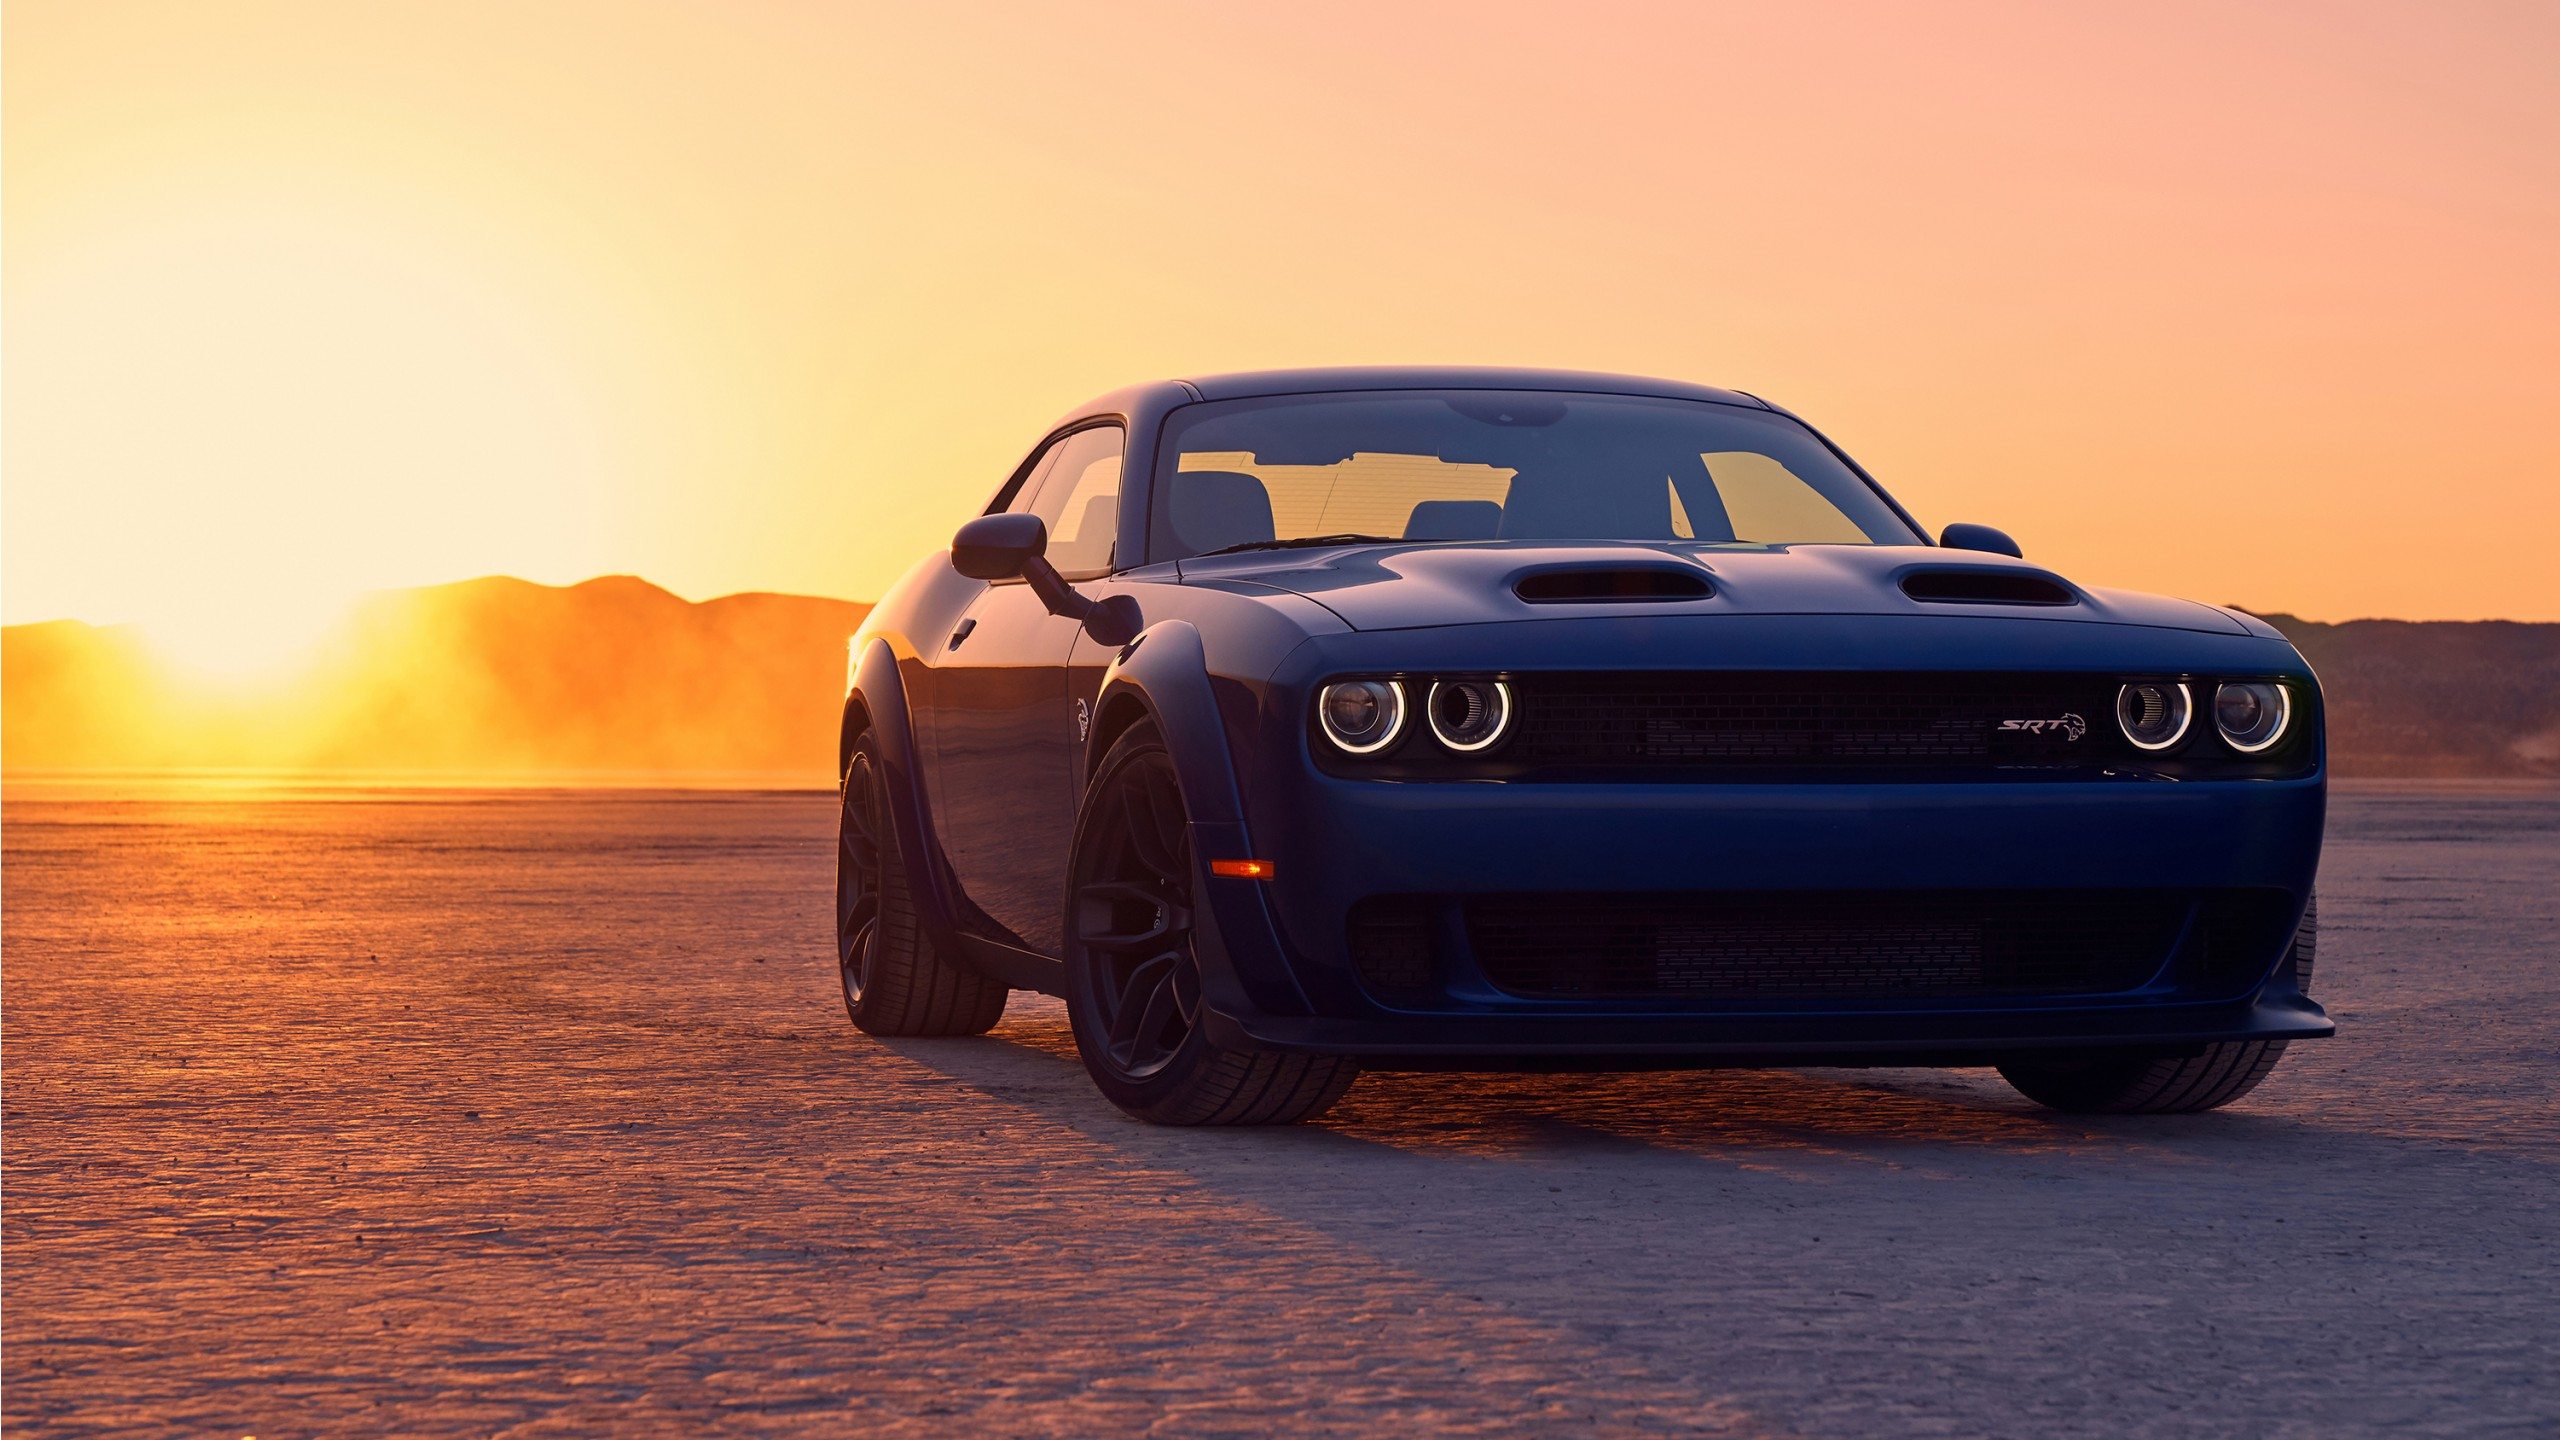 Dodge Charger Srt Hellcat >> 2019 Dodge Challenger SRT Hellcat Widebody Wallpaper | HD Car Wallpapers | ID #10711